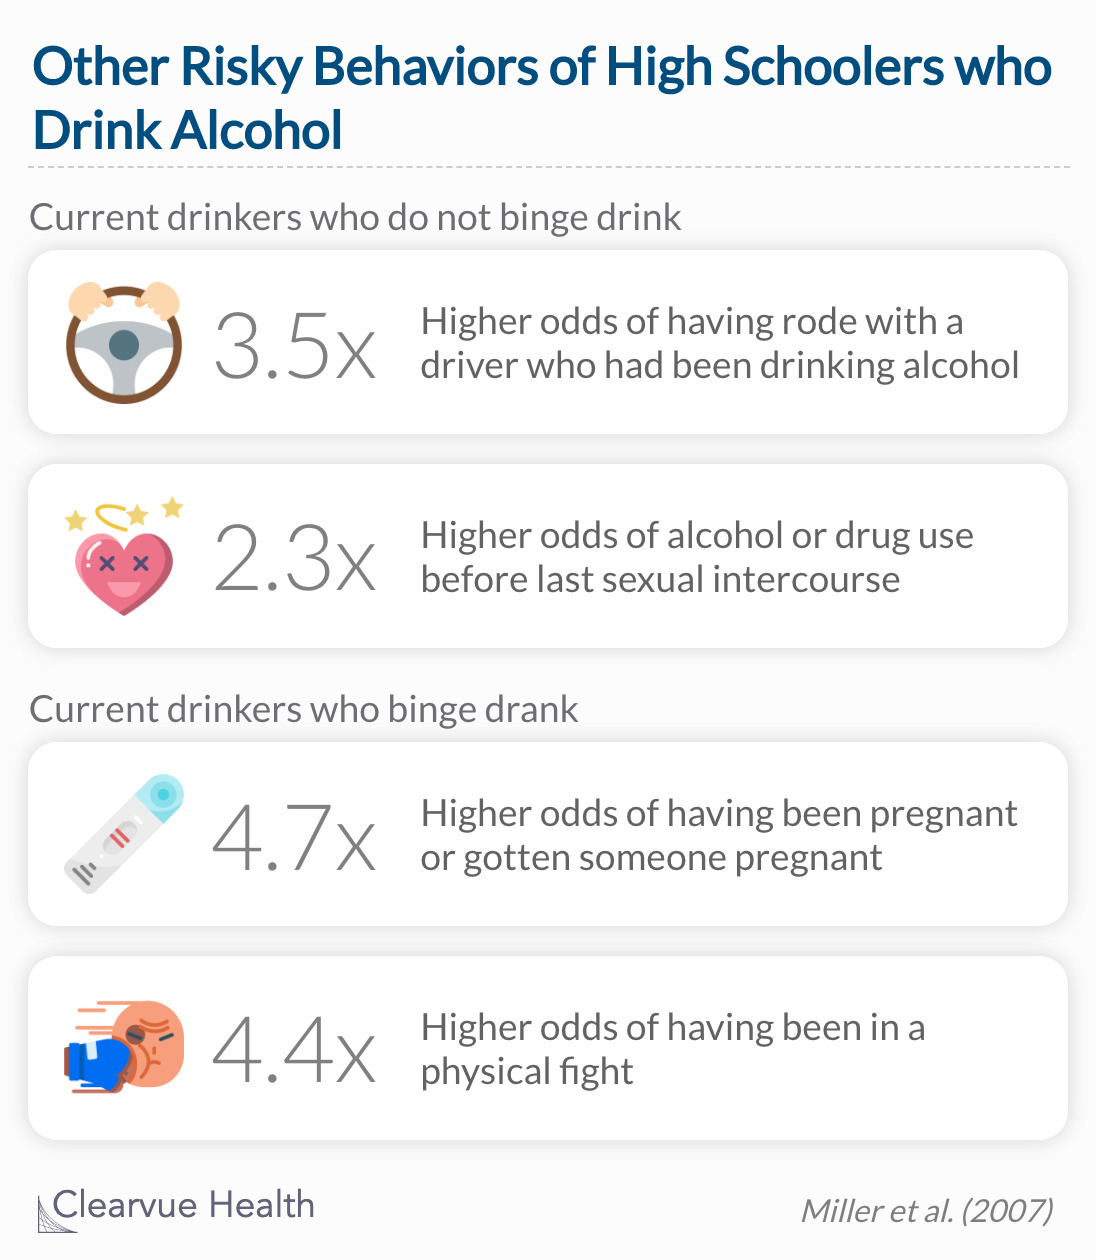 High school students who drink alcohol are more likely to participate in other risky behaviors like drunk driving and